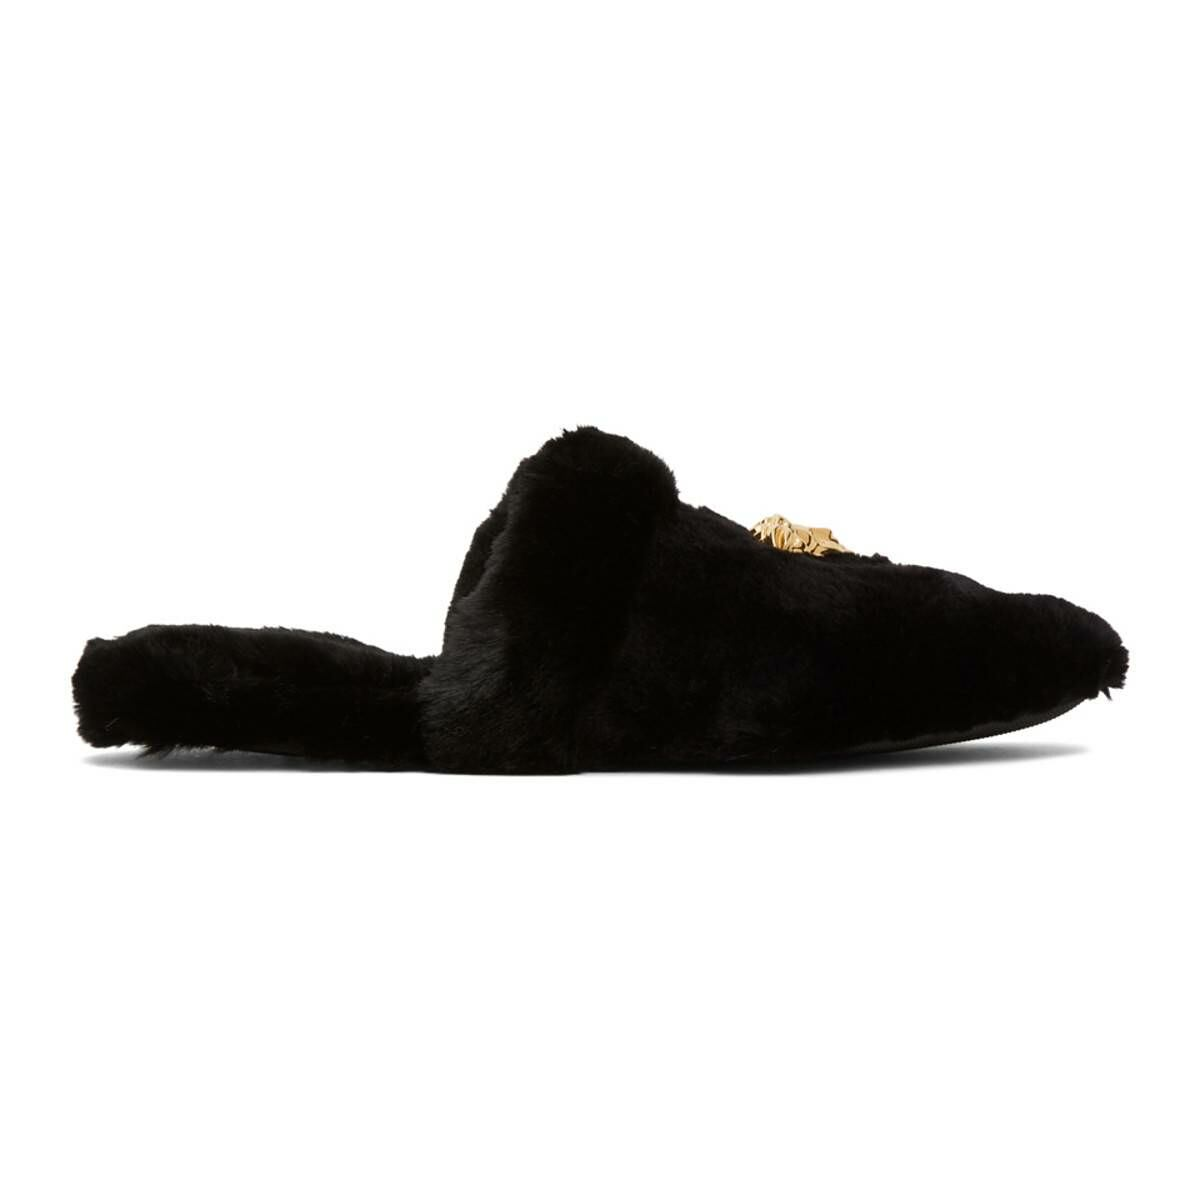 Versace Black Faux-Fur Palazzo Slippers Ssense USA MEN Men SHOES Mens LOAFERS